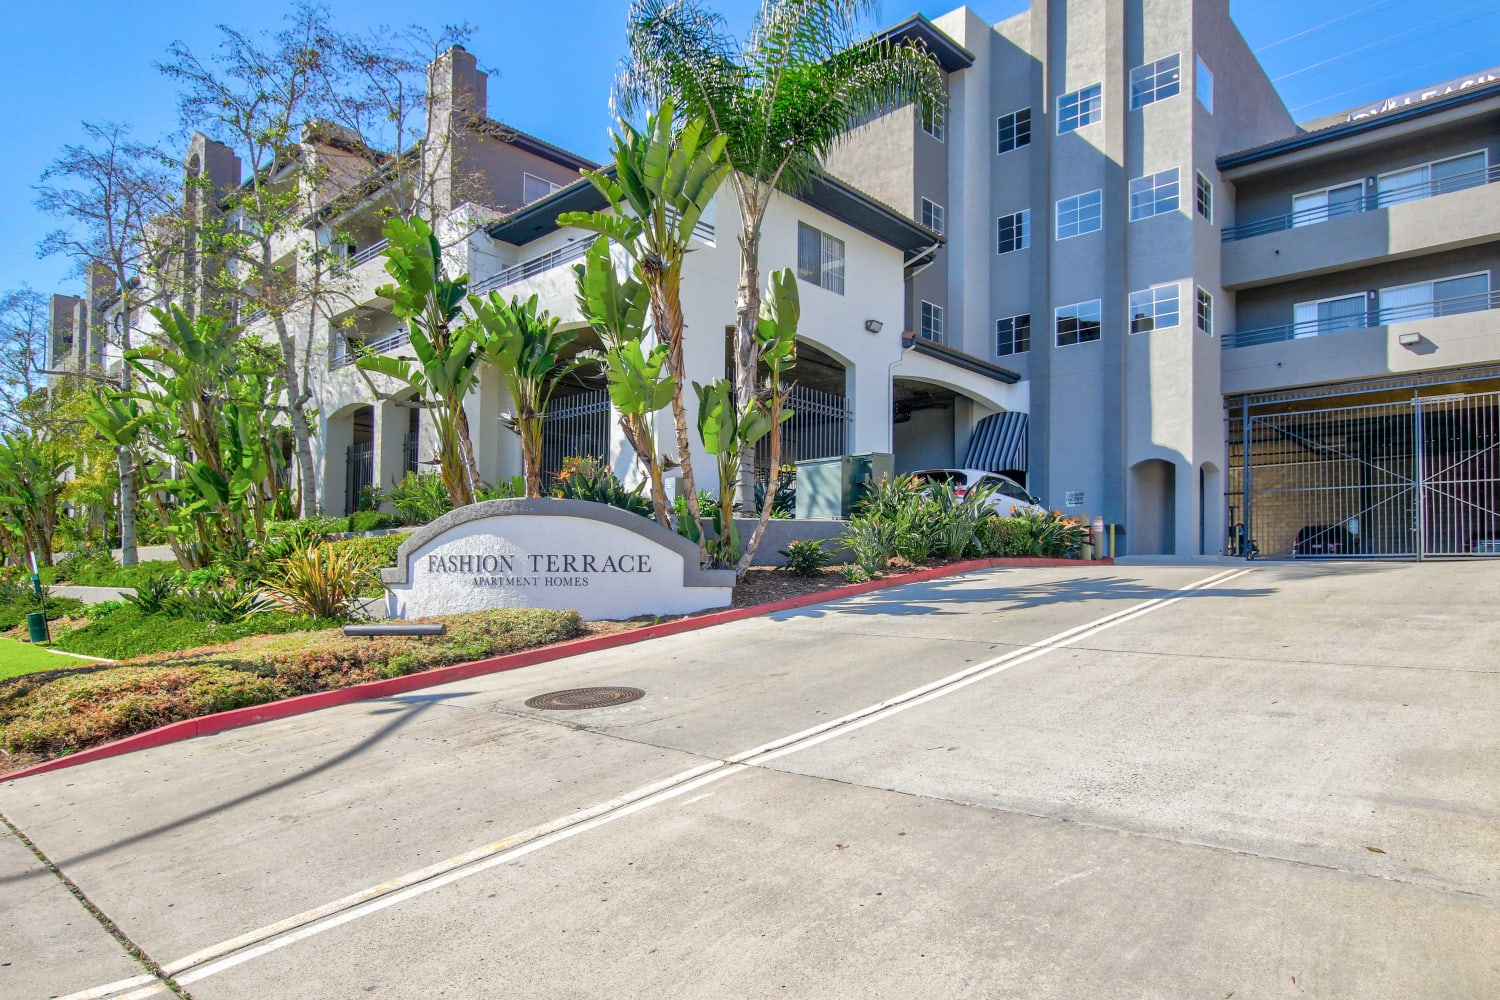 Driveway at Fashion Terrace in San Diego, California